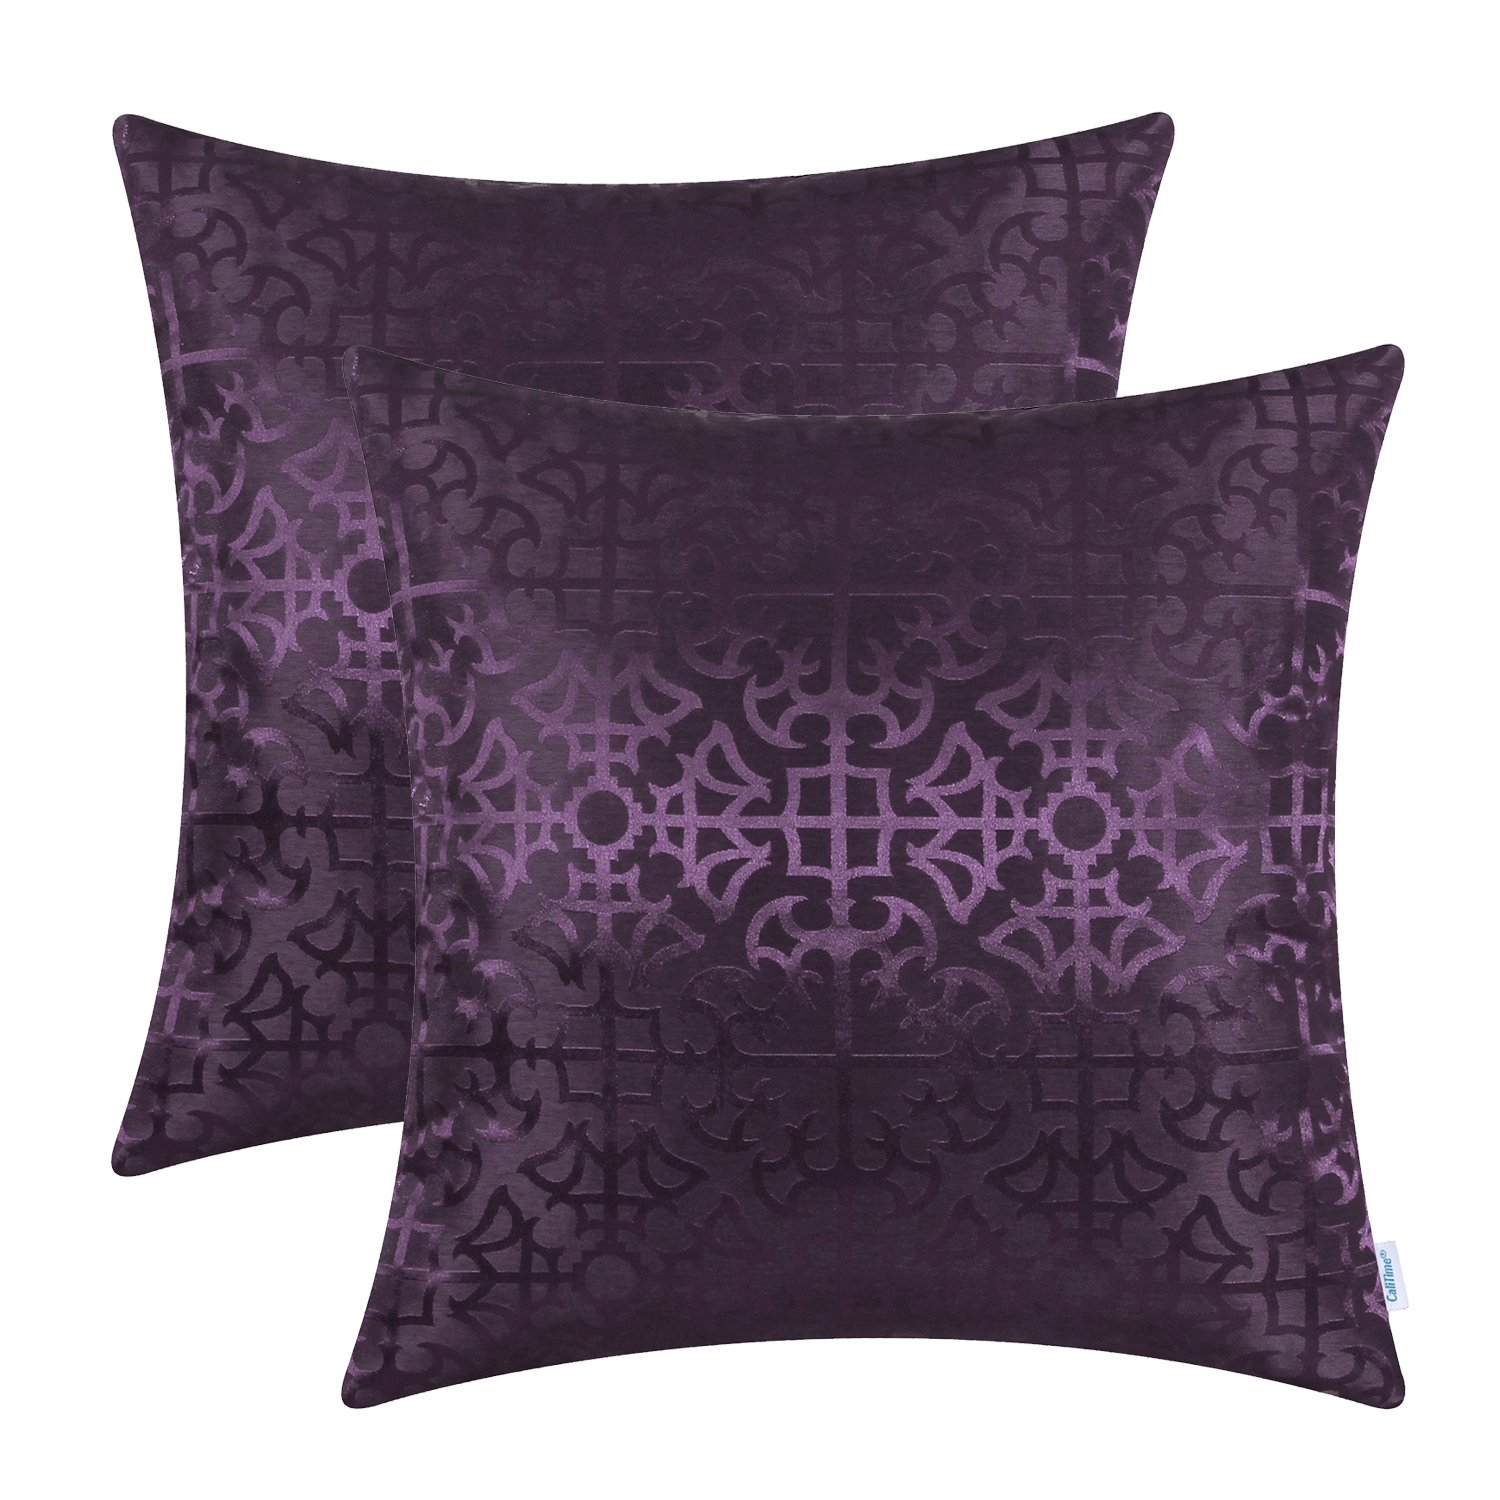 CaliTime Pack of 2 Throw Pillow Covers Cases for Couch Sofa Home Decor Vintage Shining & Dull Contrast Cross Flowers Trellis Geometric Figure 18 X 18 Inches Deep Purple